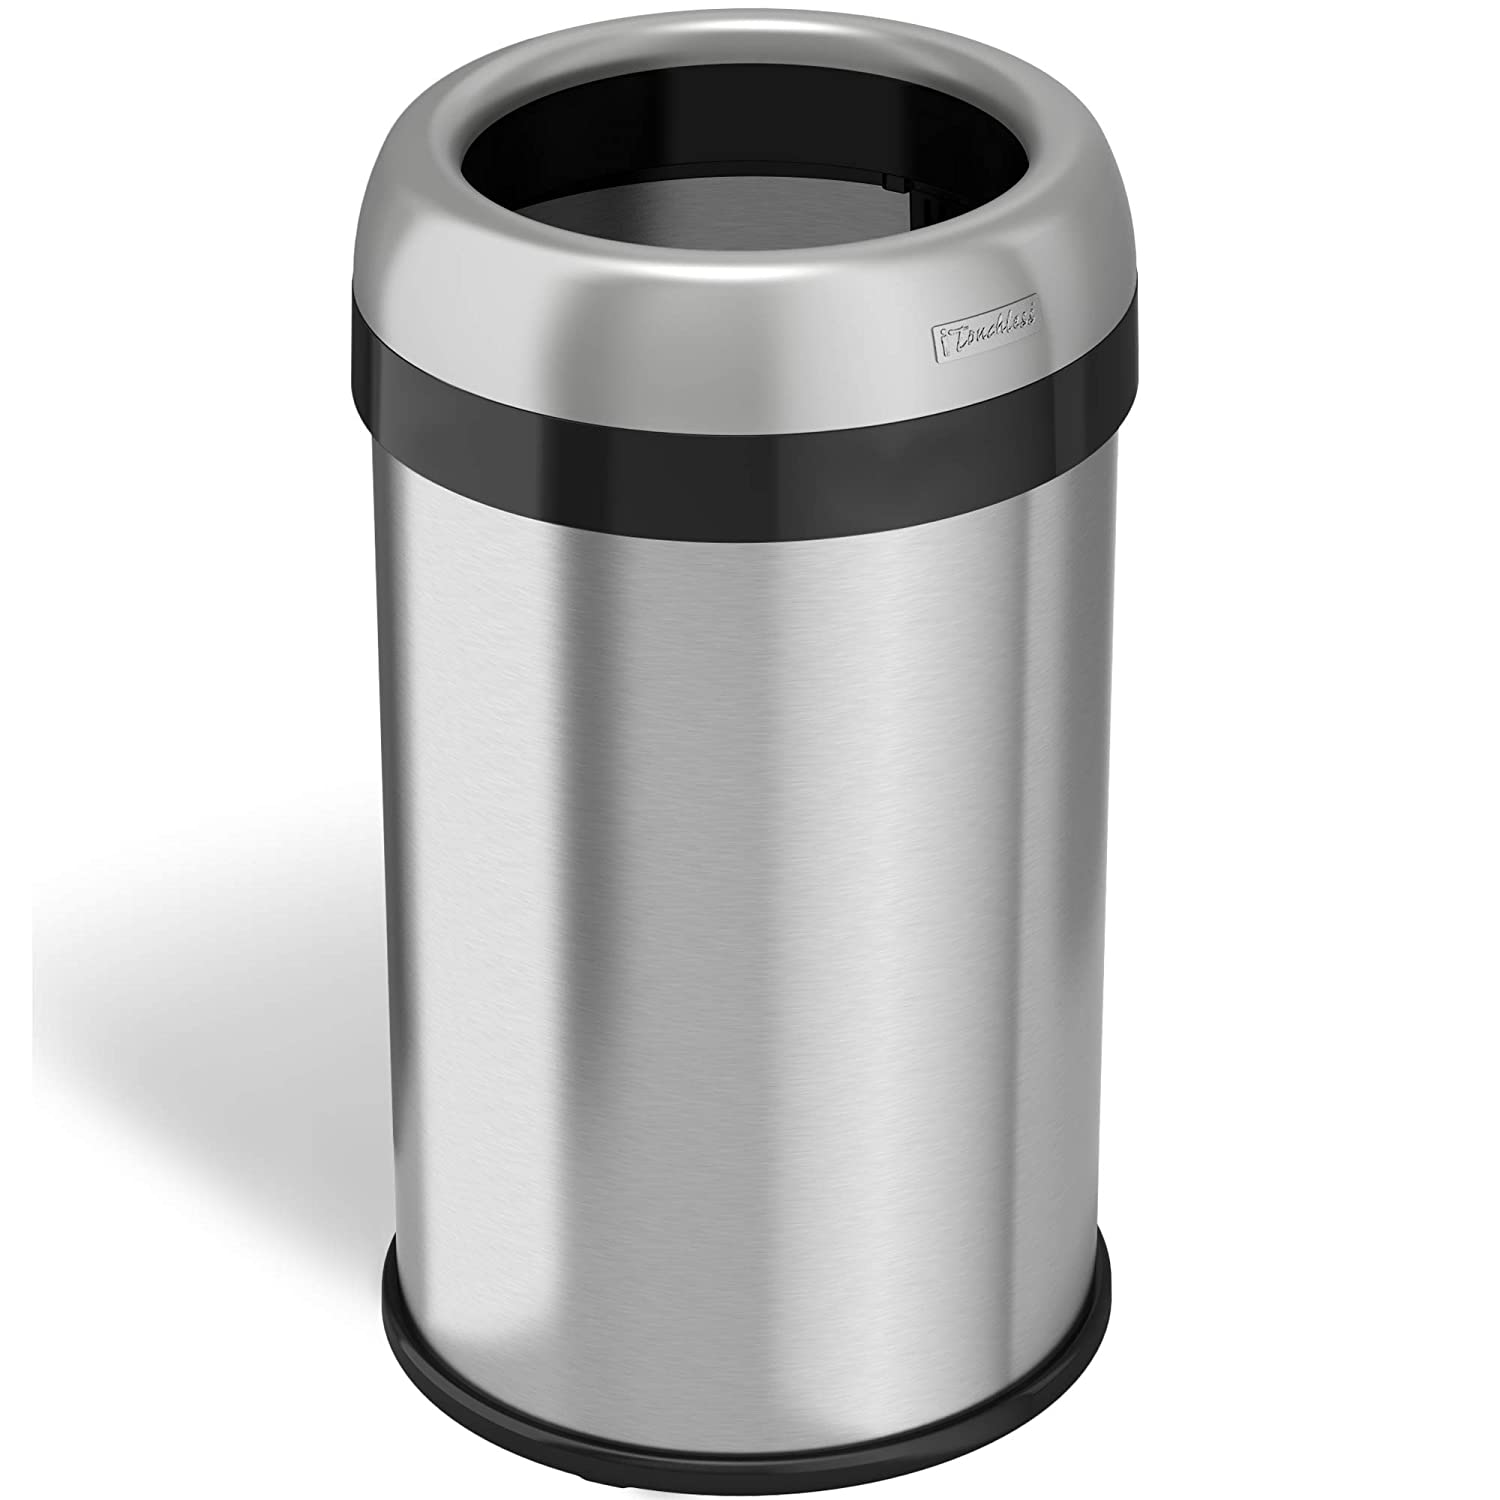 13 Gallon iTouchless 18 Gallon Dual-Deodorizer Open Top Trash Can Rectangular Shape, Commercial Grade Stainless Steel, 68 Liter Recycle Bin, Silver,